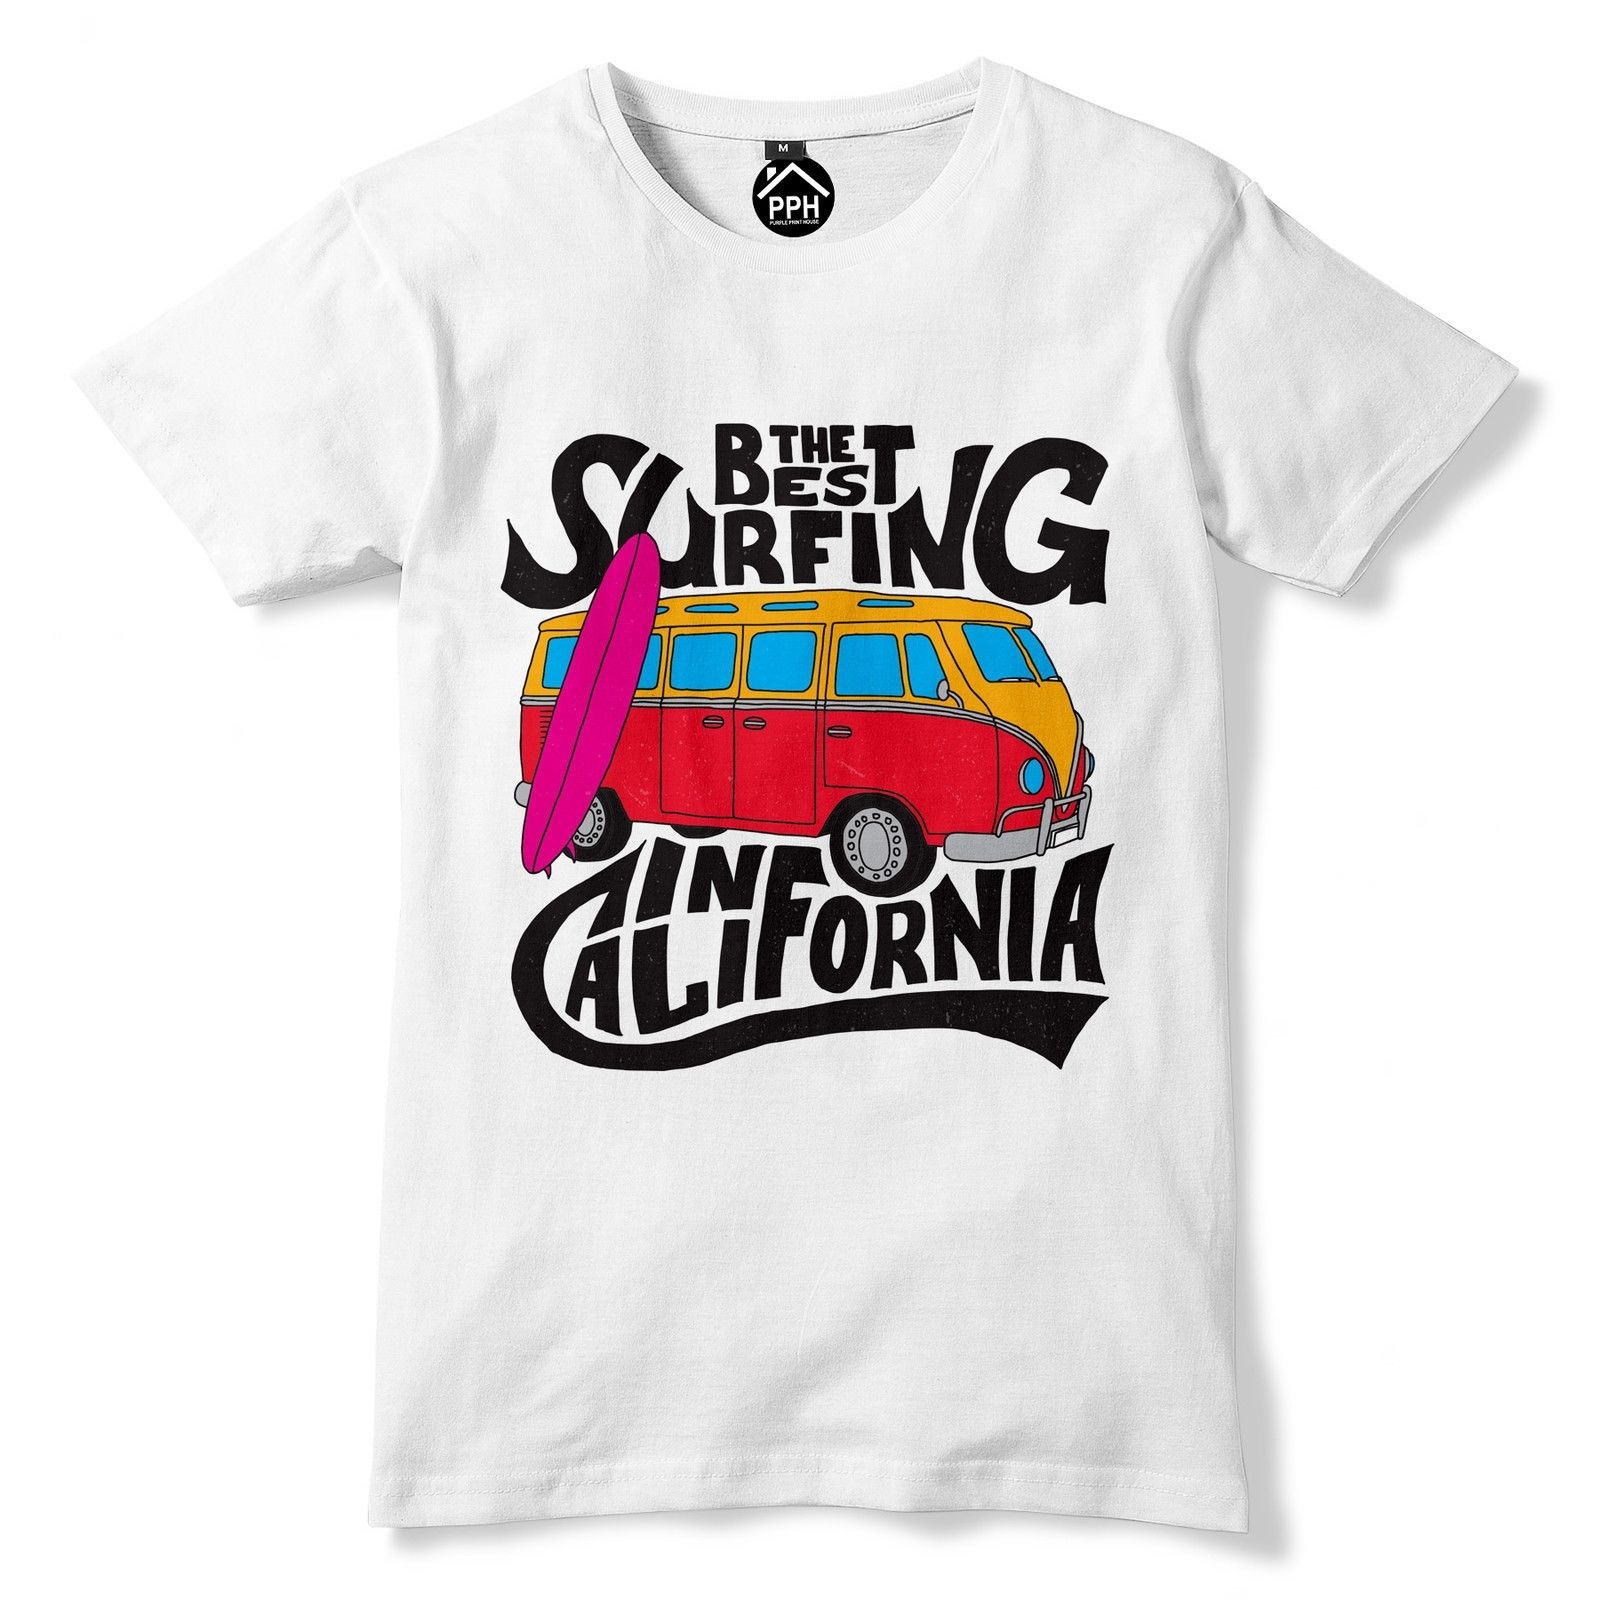 The Best Surfing California Cali Tshirt Surfed Mens Vintage Campervan T Shirt 126 T-Shir ...